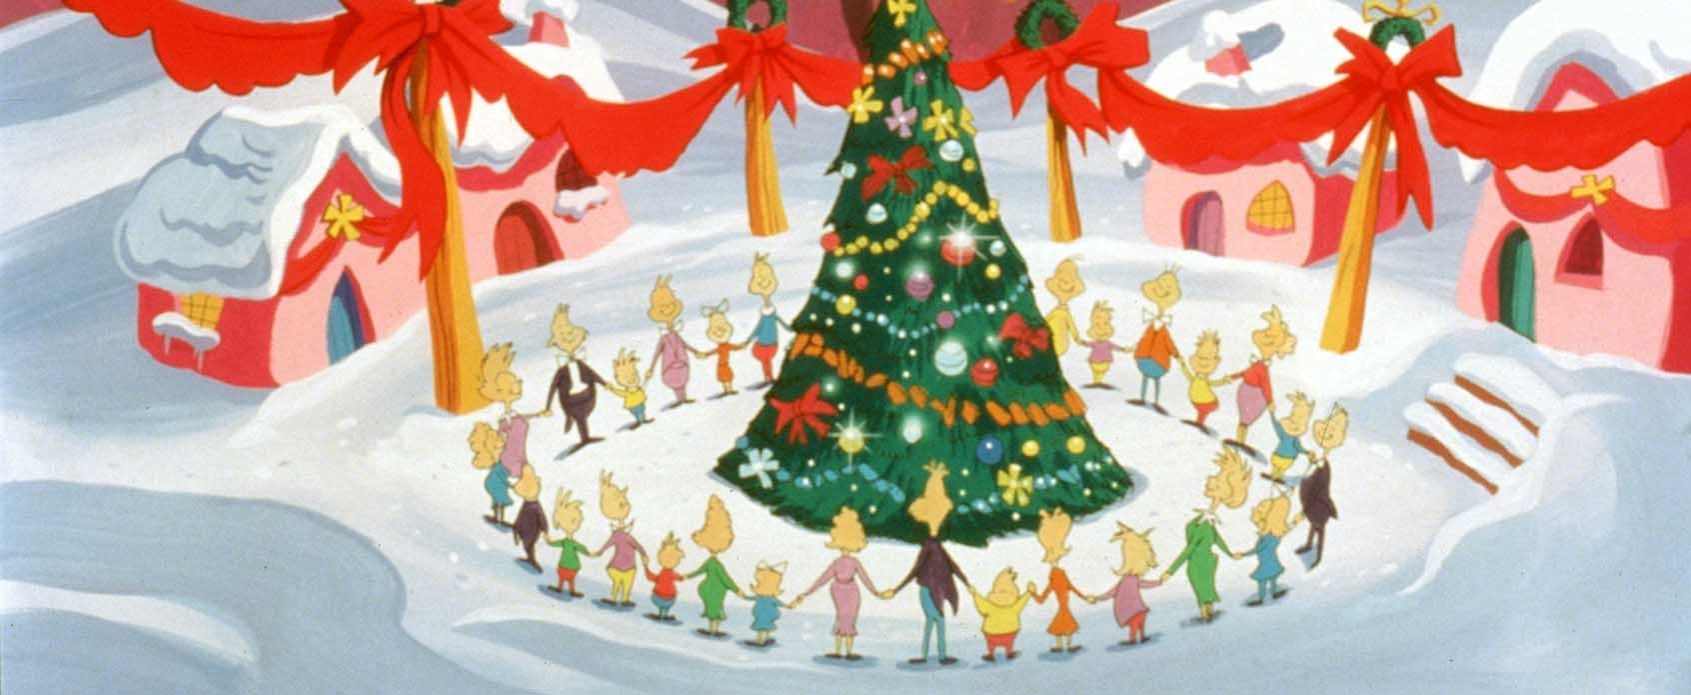 dr seuss how the grinch stole christmas tntdramacom - How The Grinch Stole Christmas Decorations